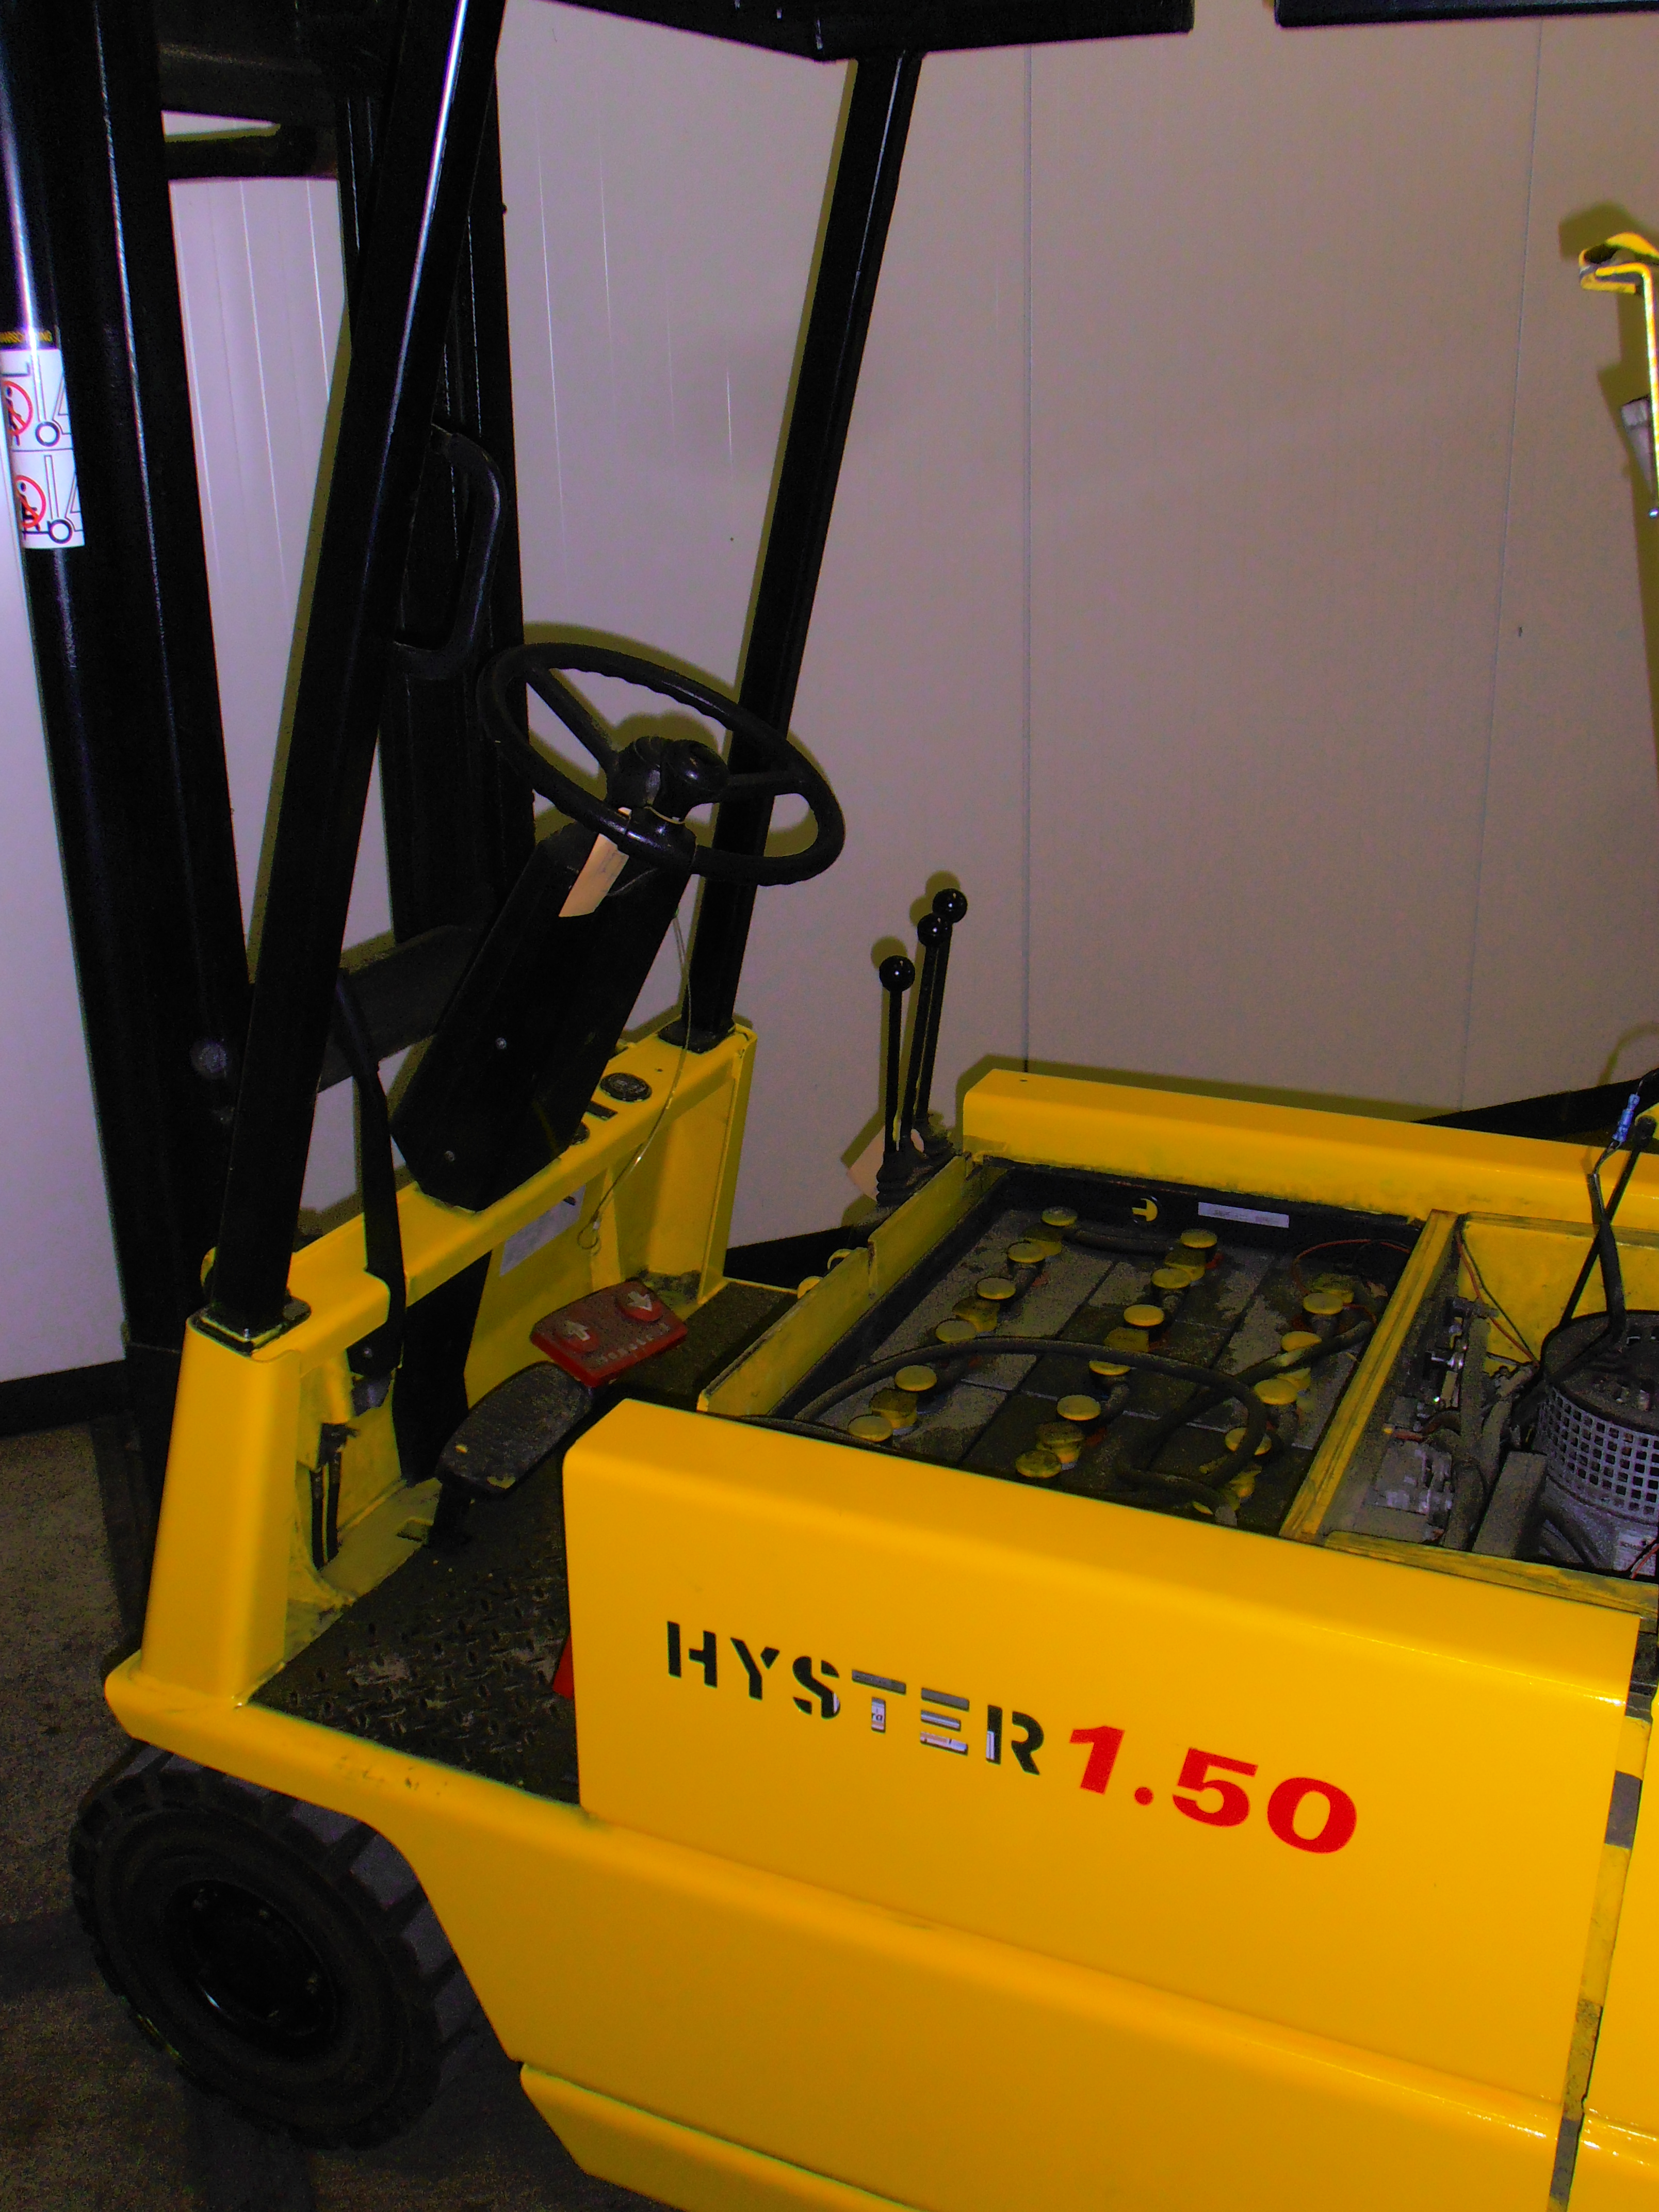 Hyster 1.50 photo - 1